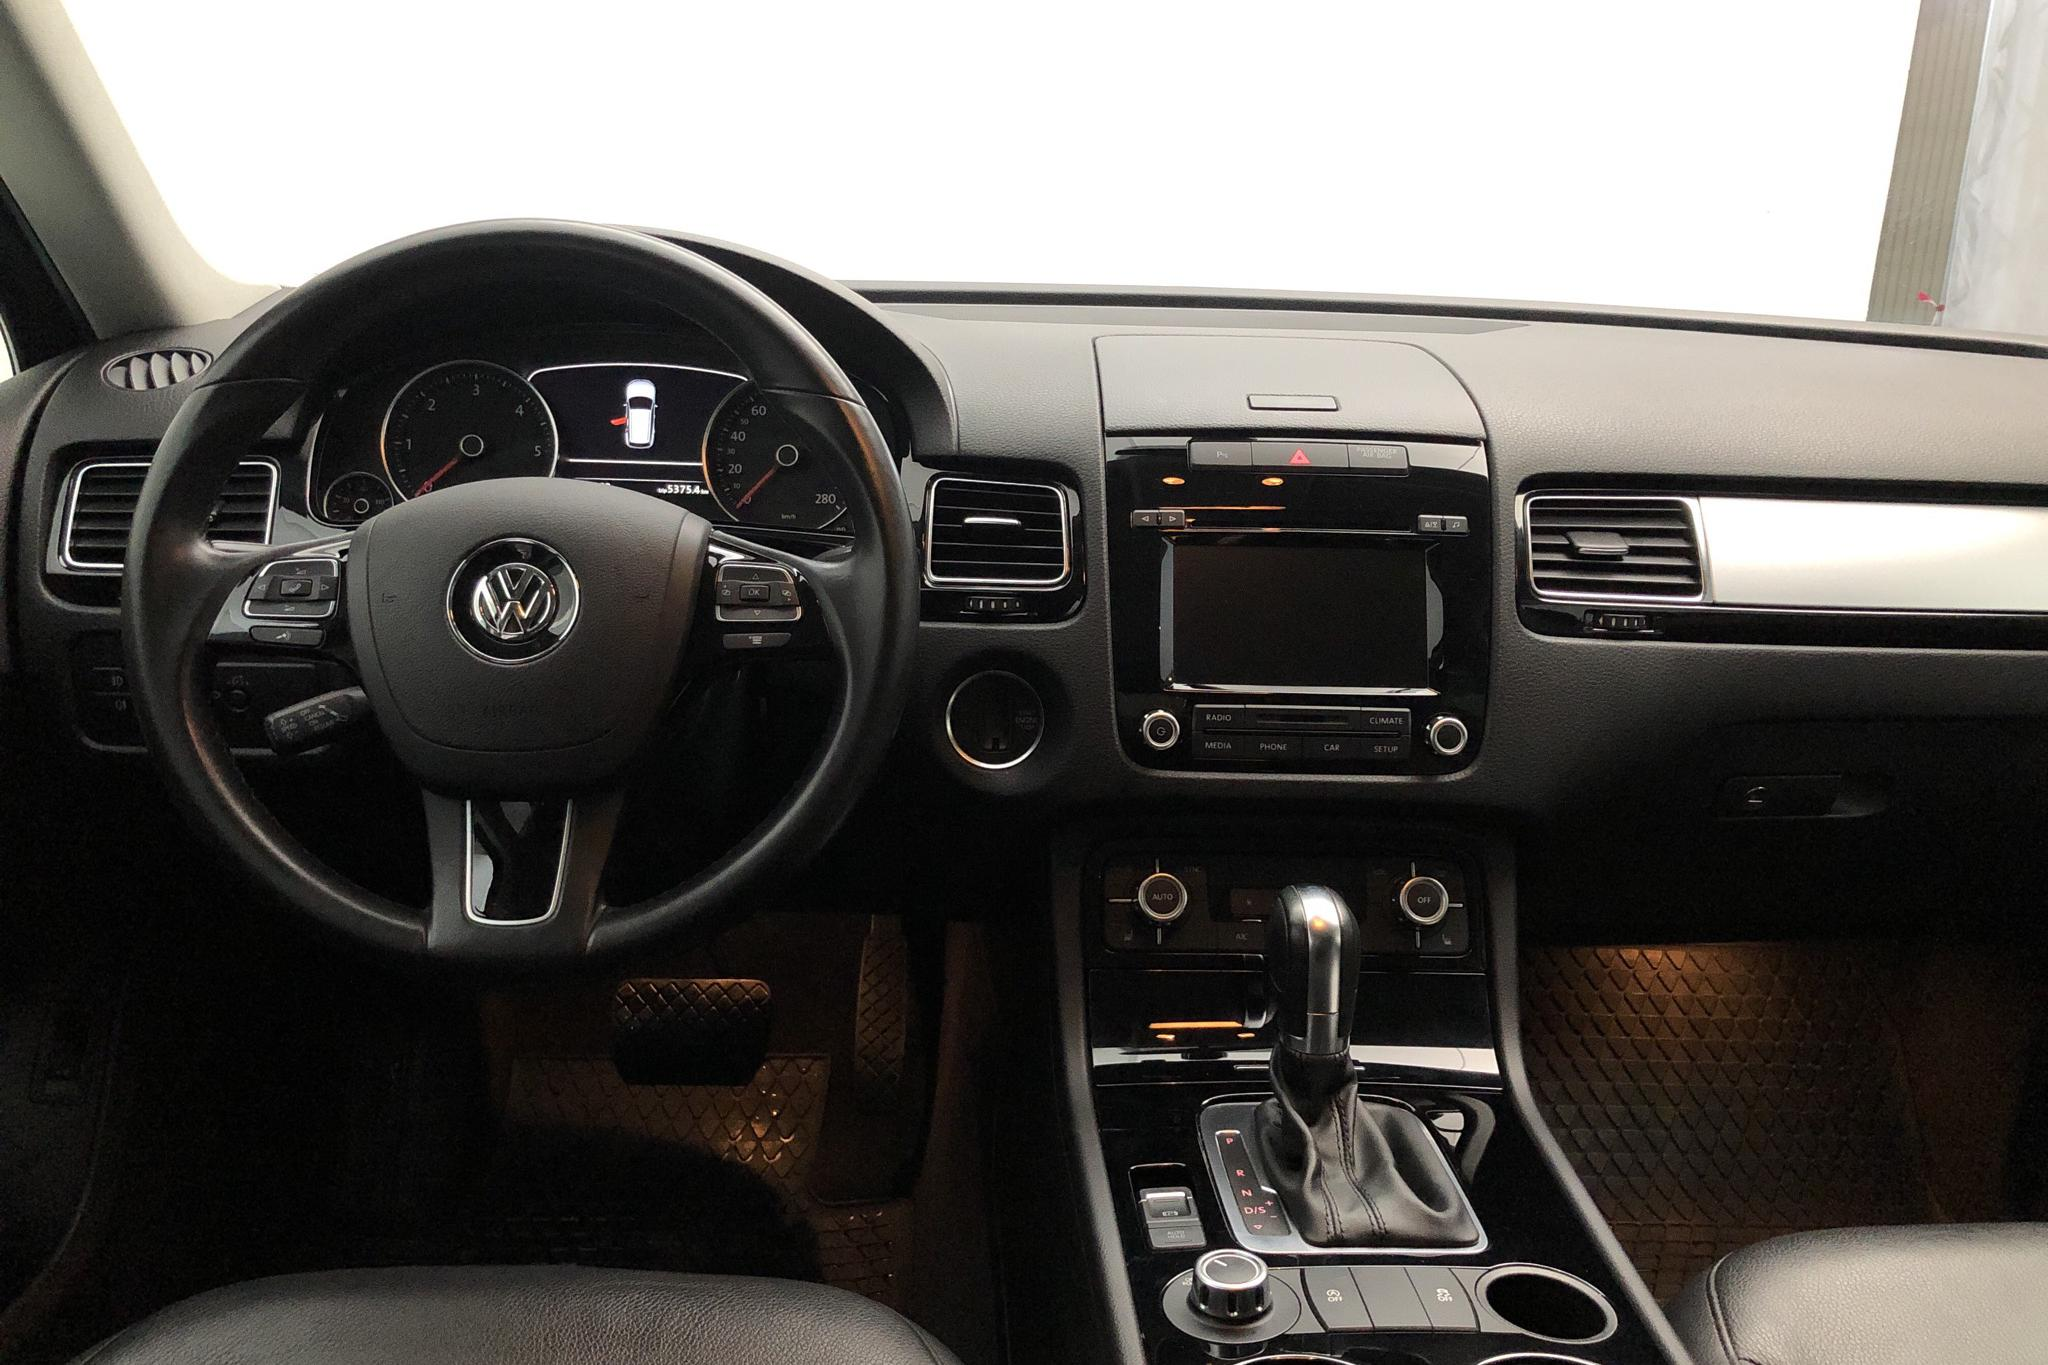 VW Touareg V6 TDI BlueMotion Technology (204hk) - 112 280 km - Automatic - Light Grey - 2014